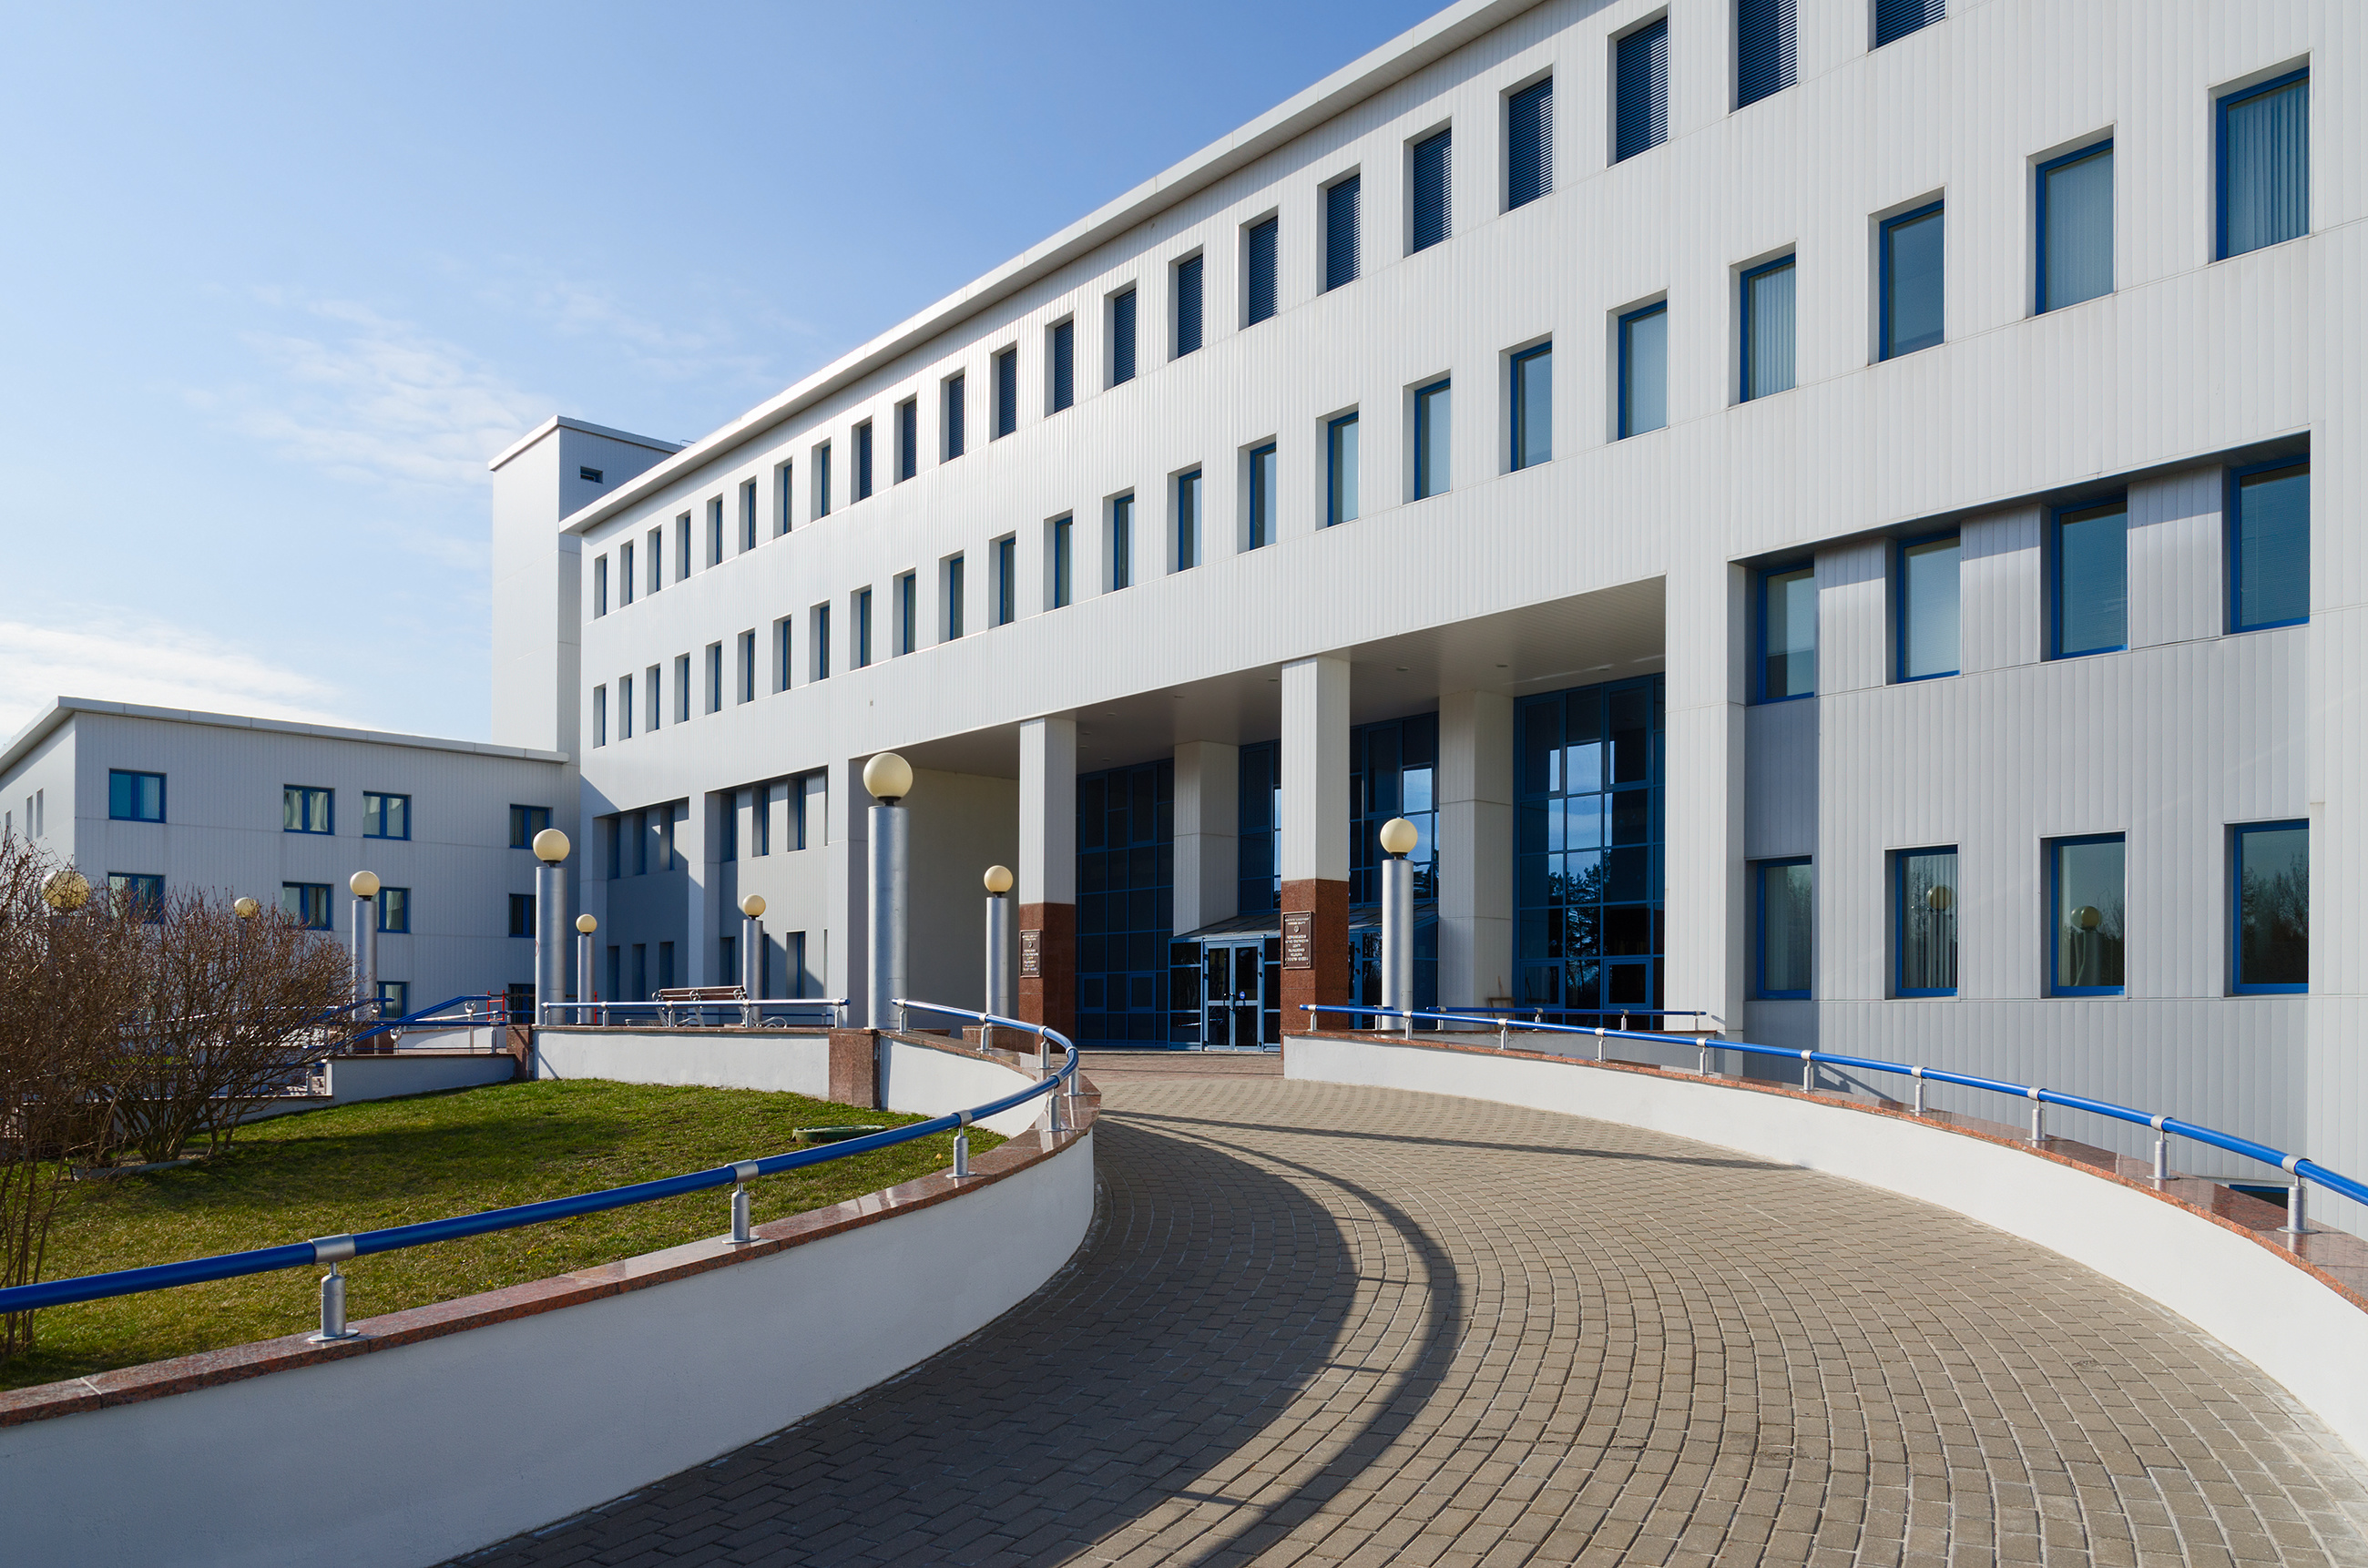 Republican Scientific and Practical Center of Radiation Medicine and Human Ecology, Gomel, Belarus